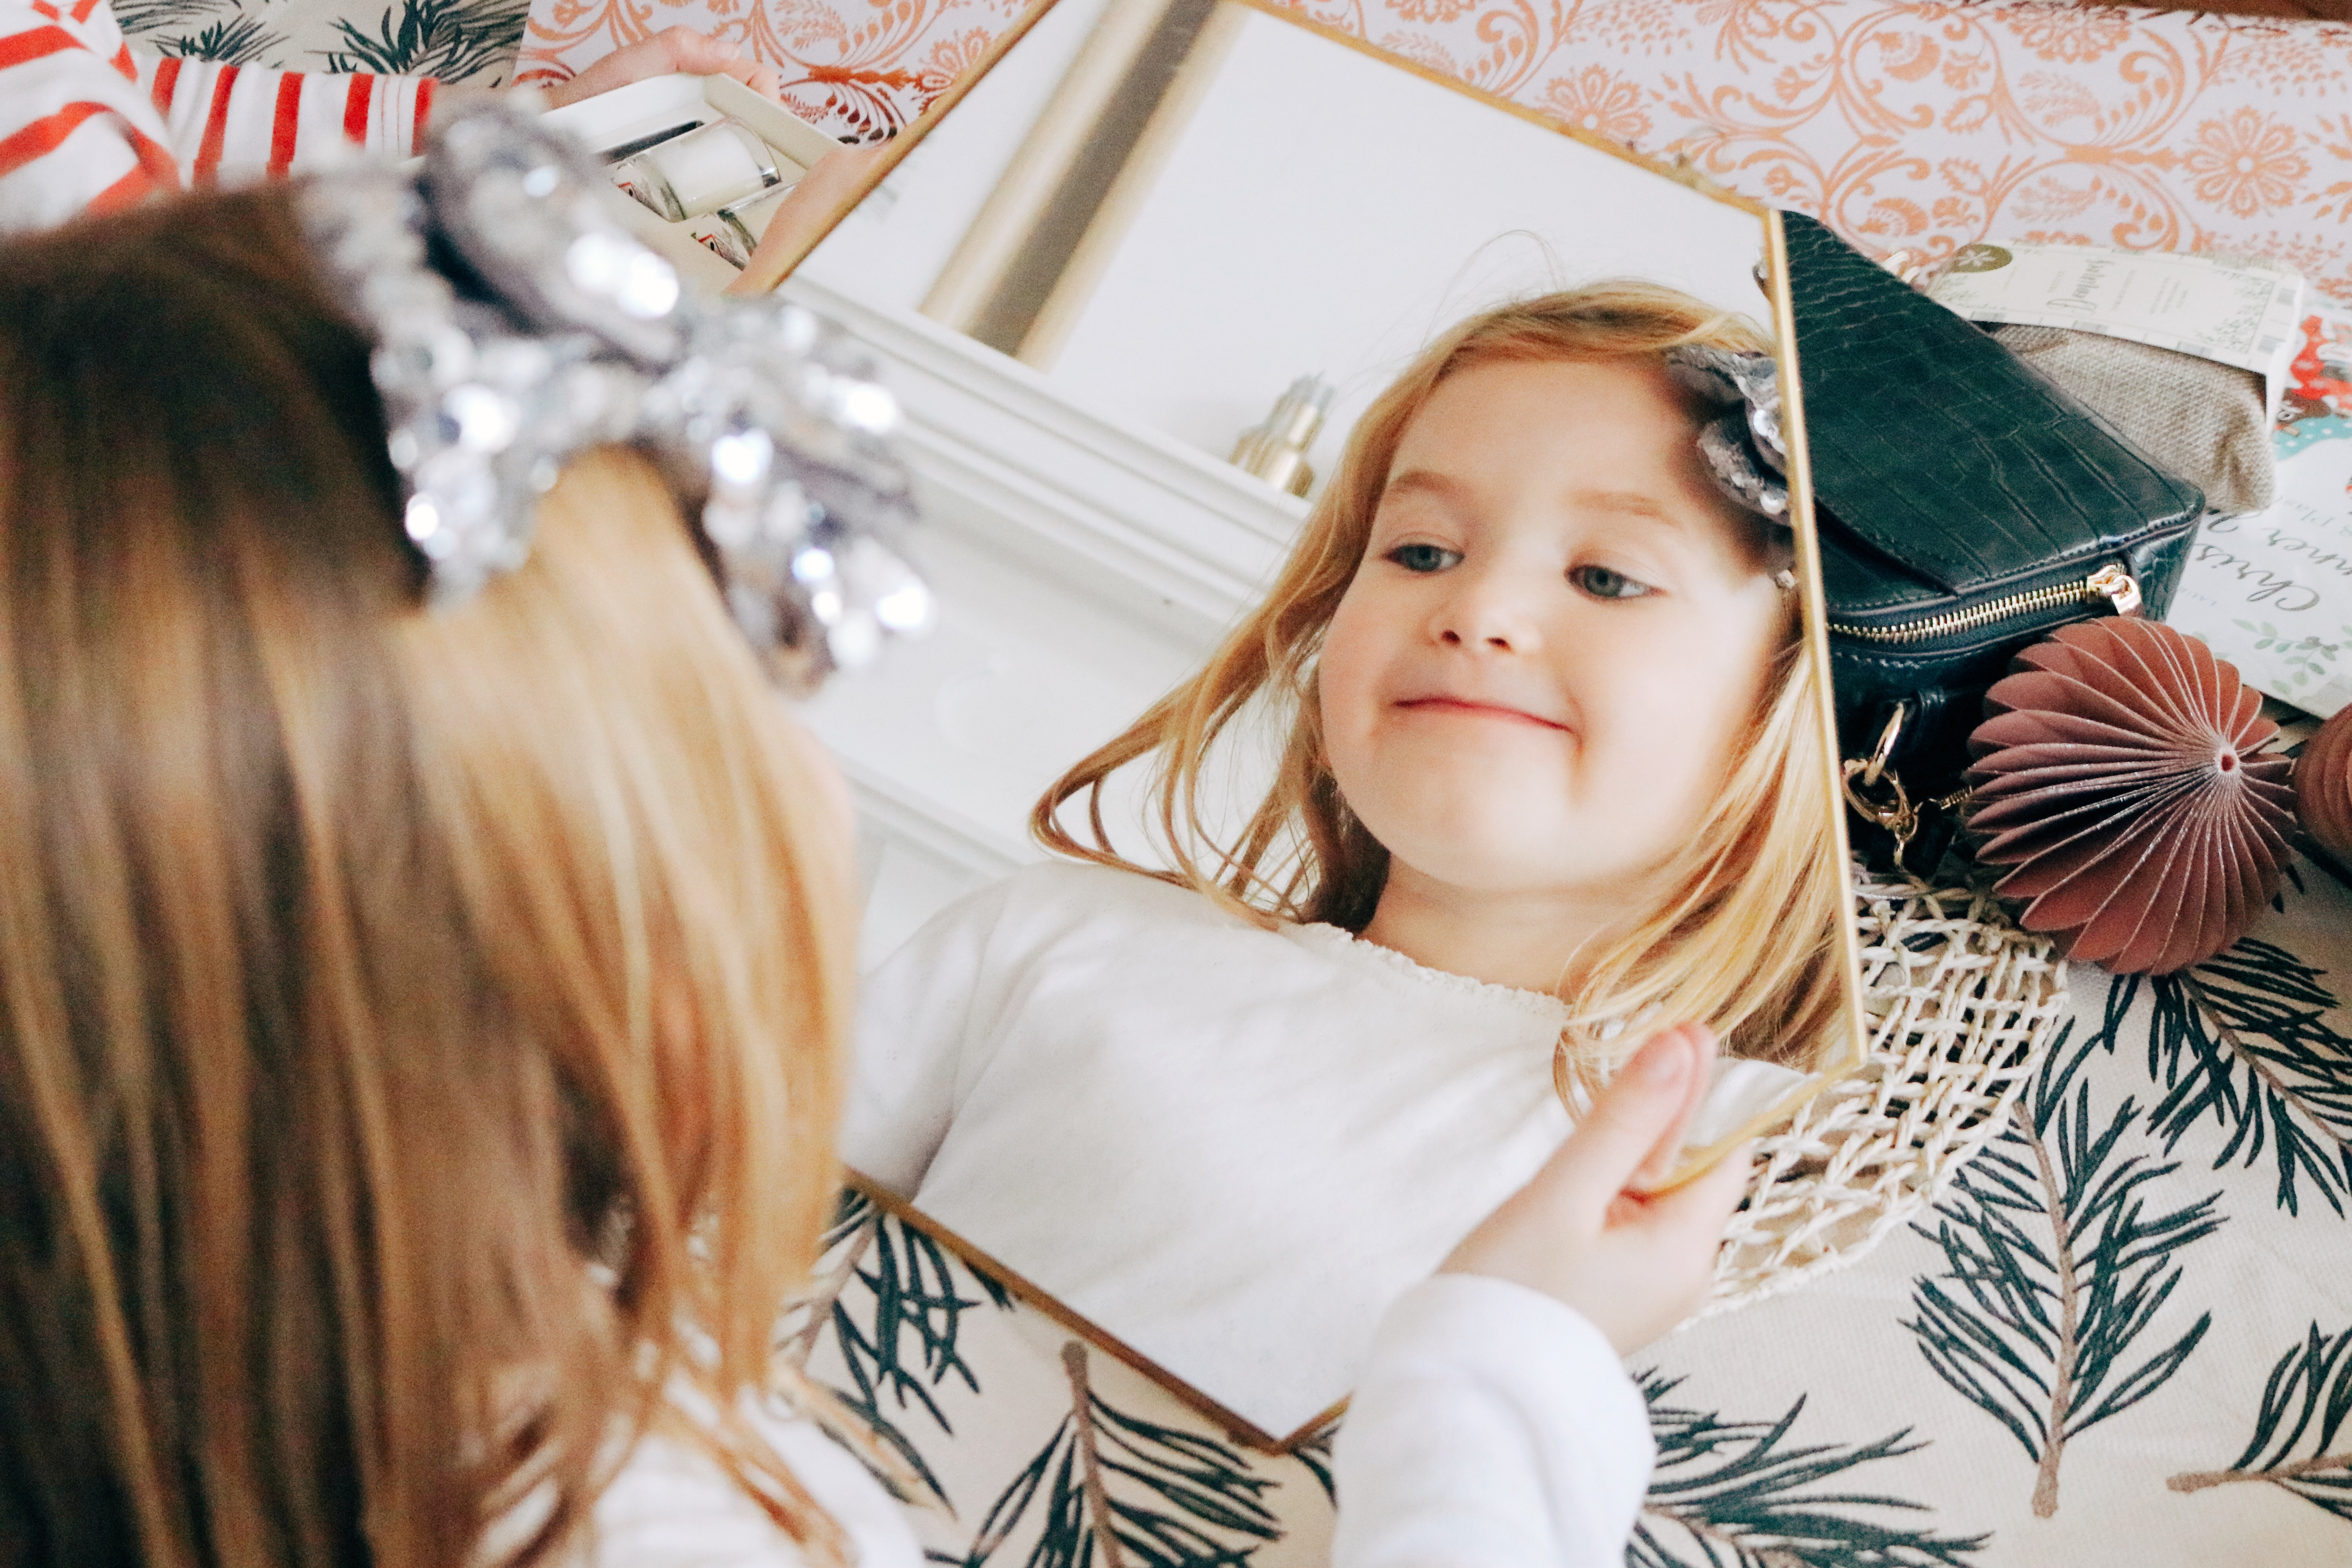 Hanging Hexagonal Mirror Ultimate Christmas 2018 Gift Guide For Her